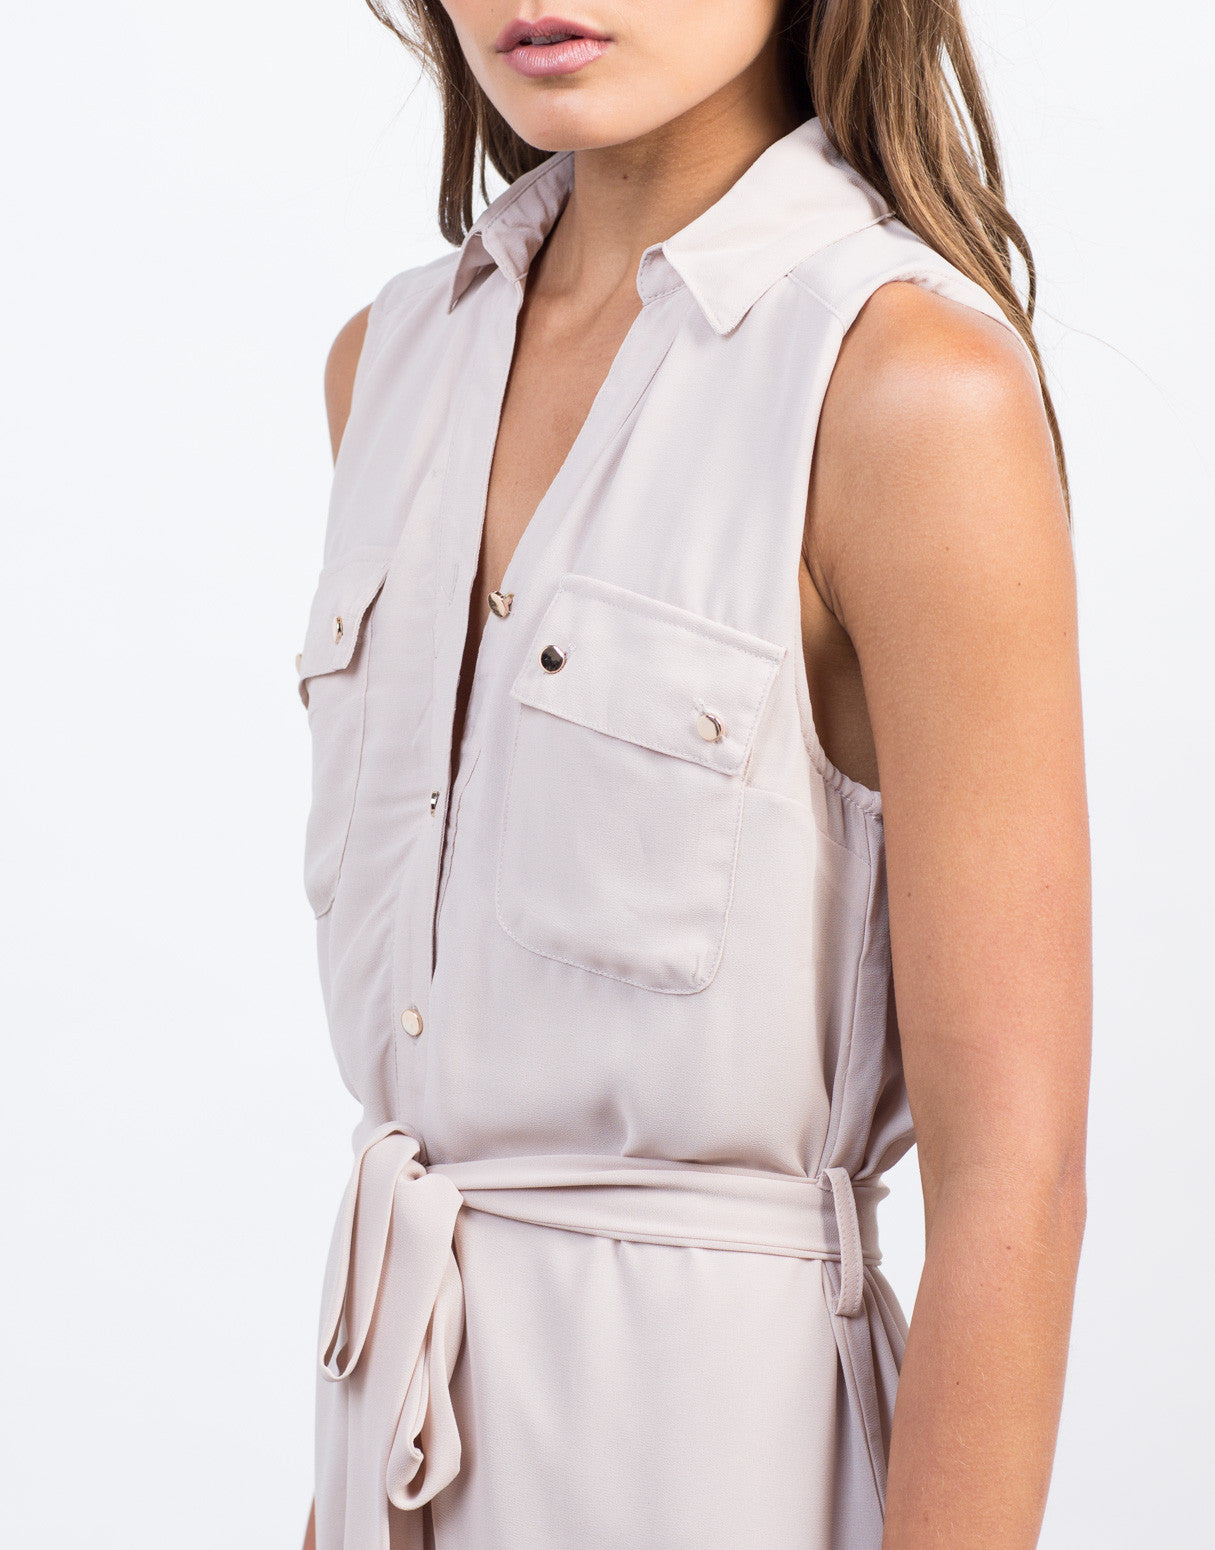 Detail of Sleeveless Chiffon Shirt Dress